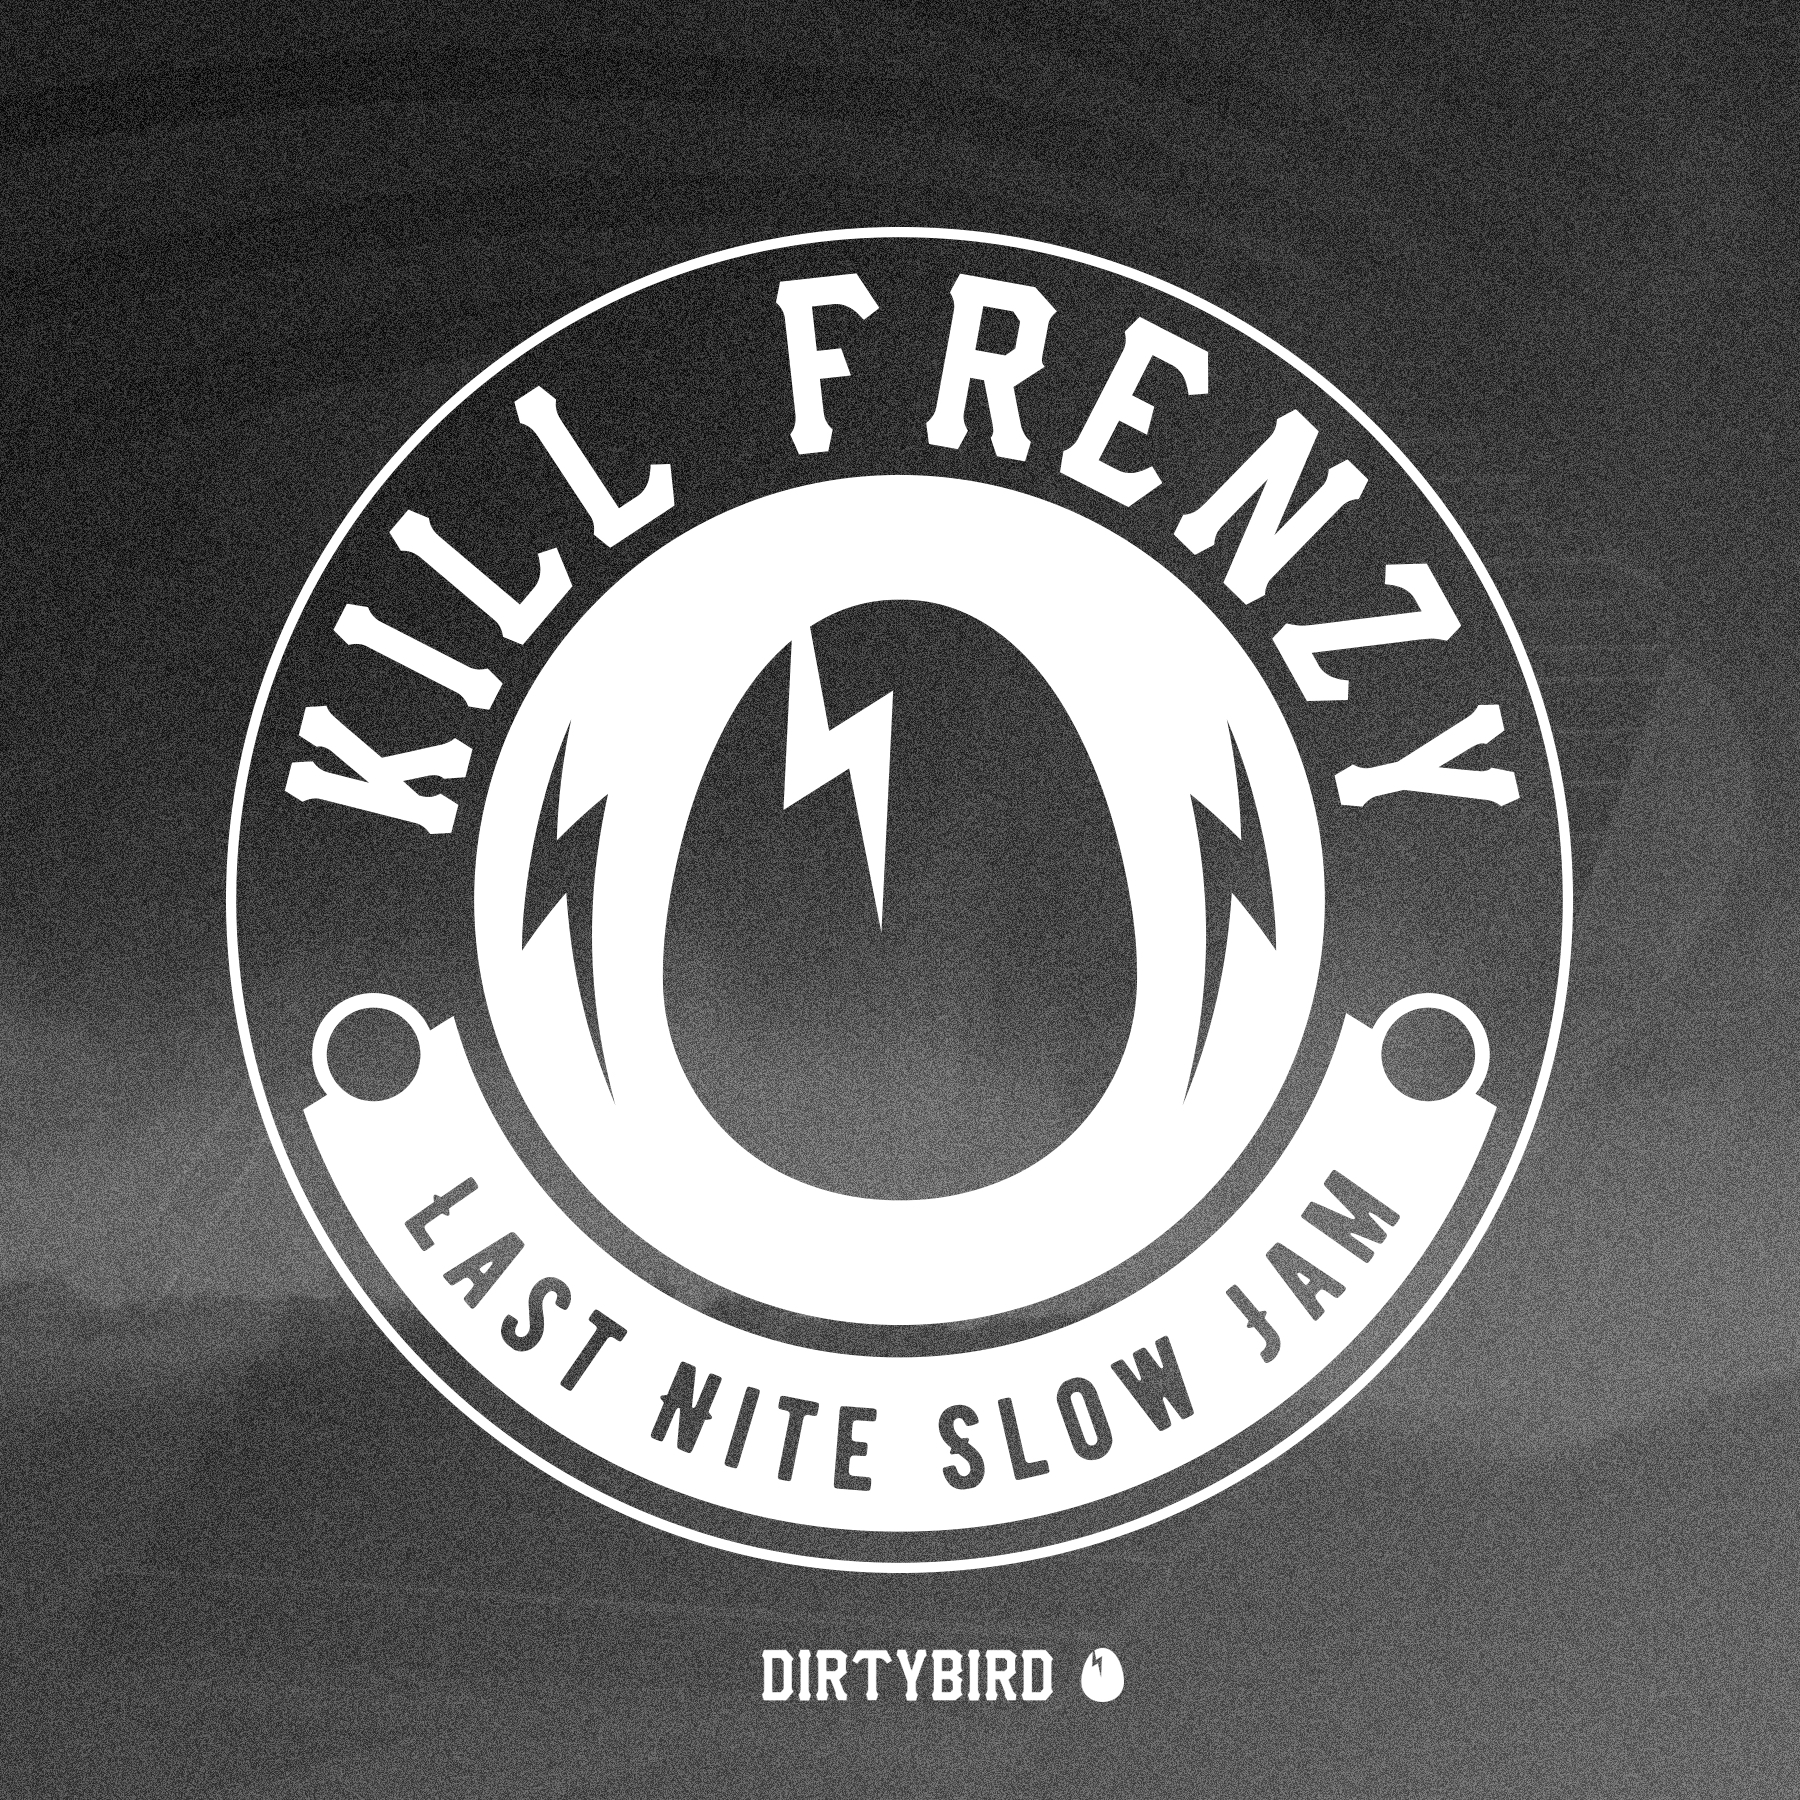 Kill frenzy birdfeed edit